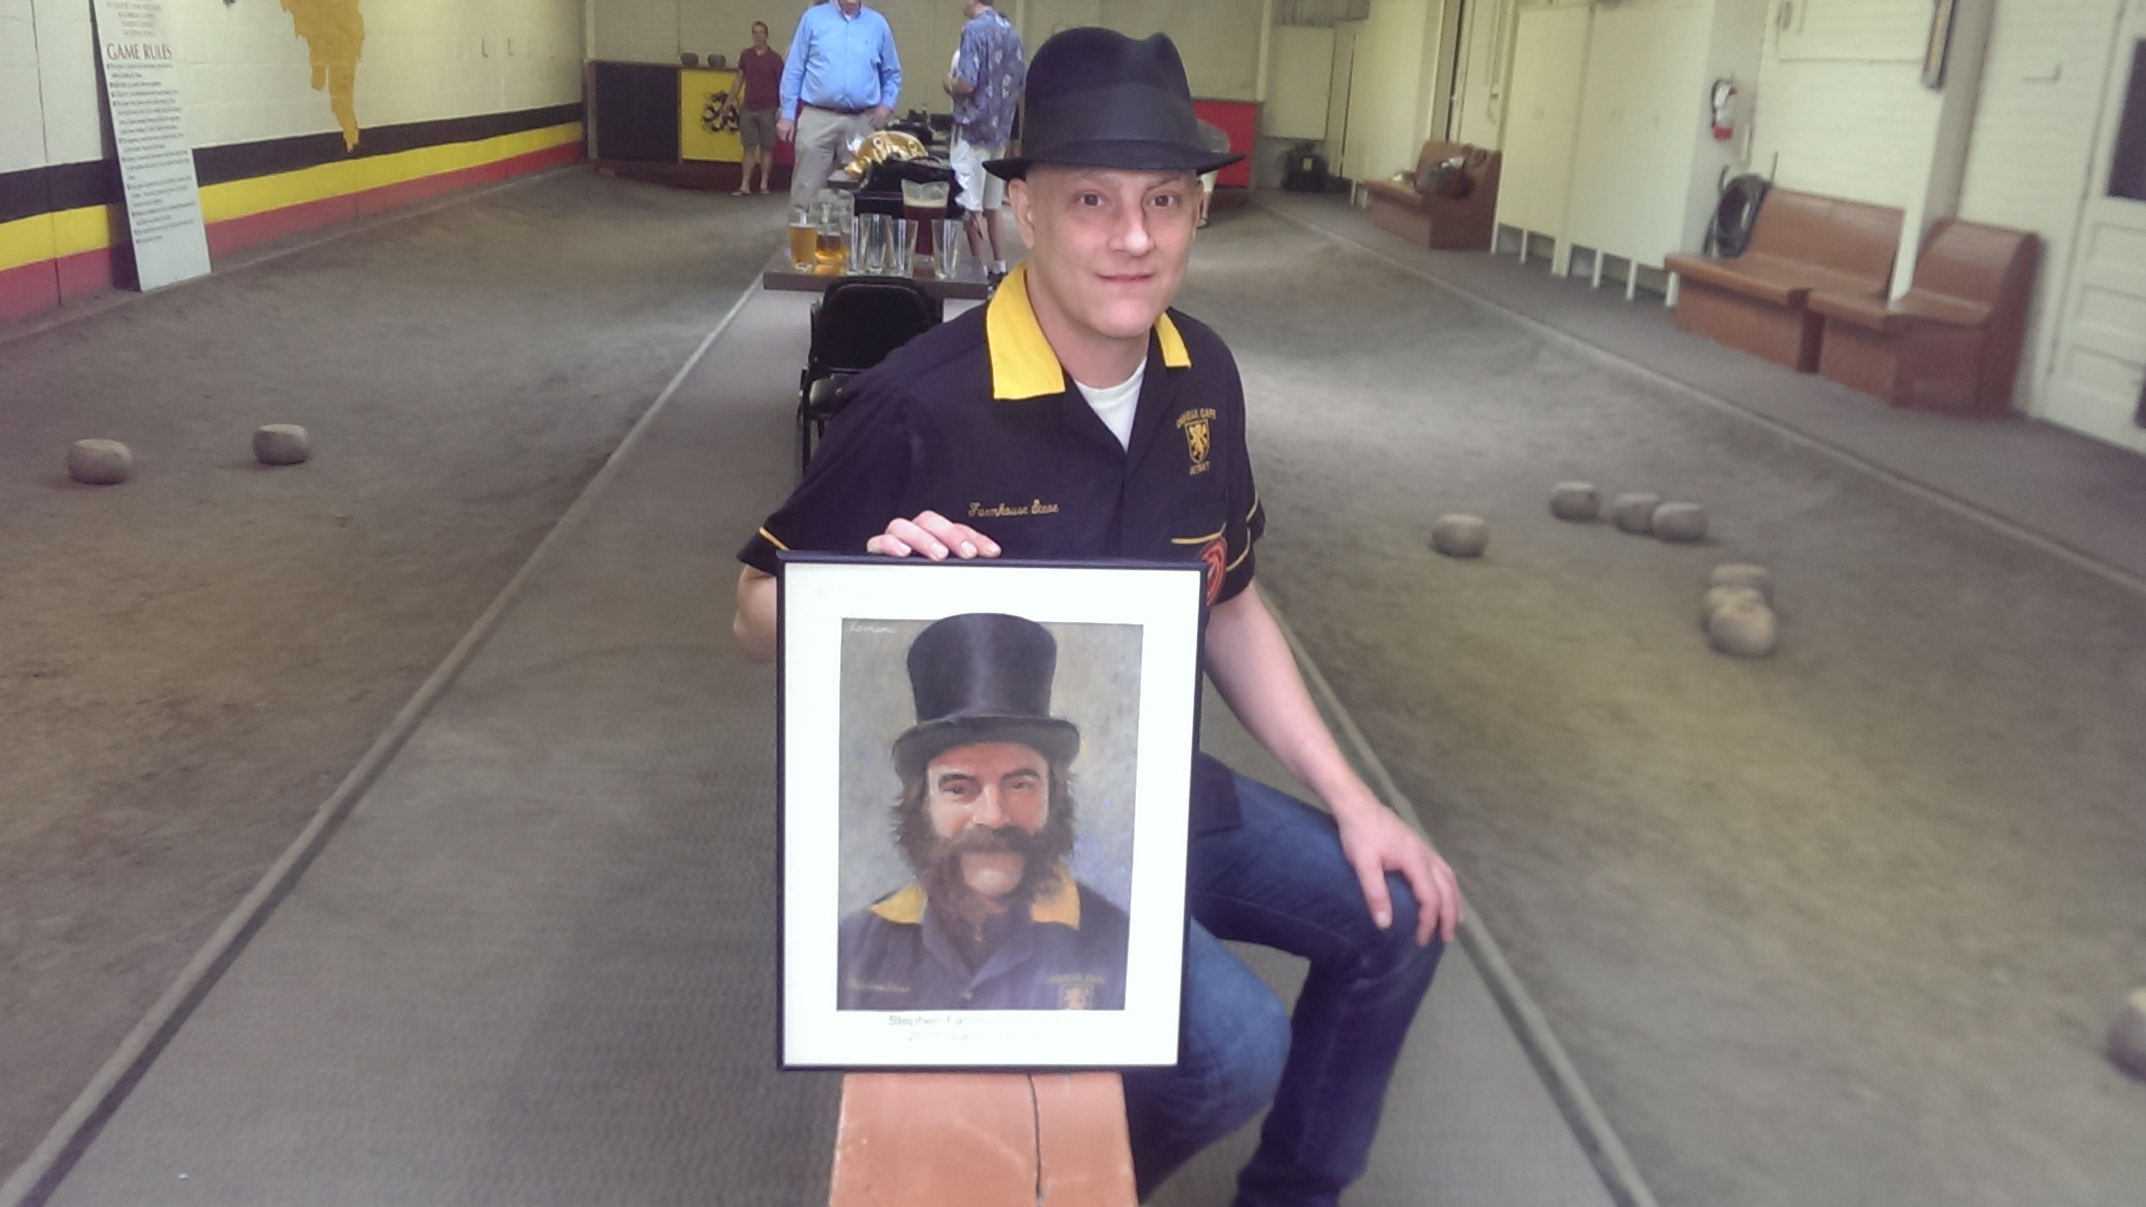 Steve Gosskie, the 2013 Featherbowling chamption in the Cadieux Cafe. Gosskie holds the second portrait that Jerry Lemenu painted for him. The first was stolen and never returned.